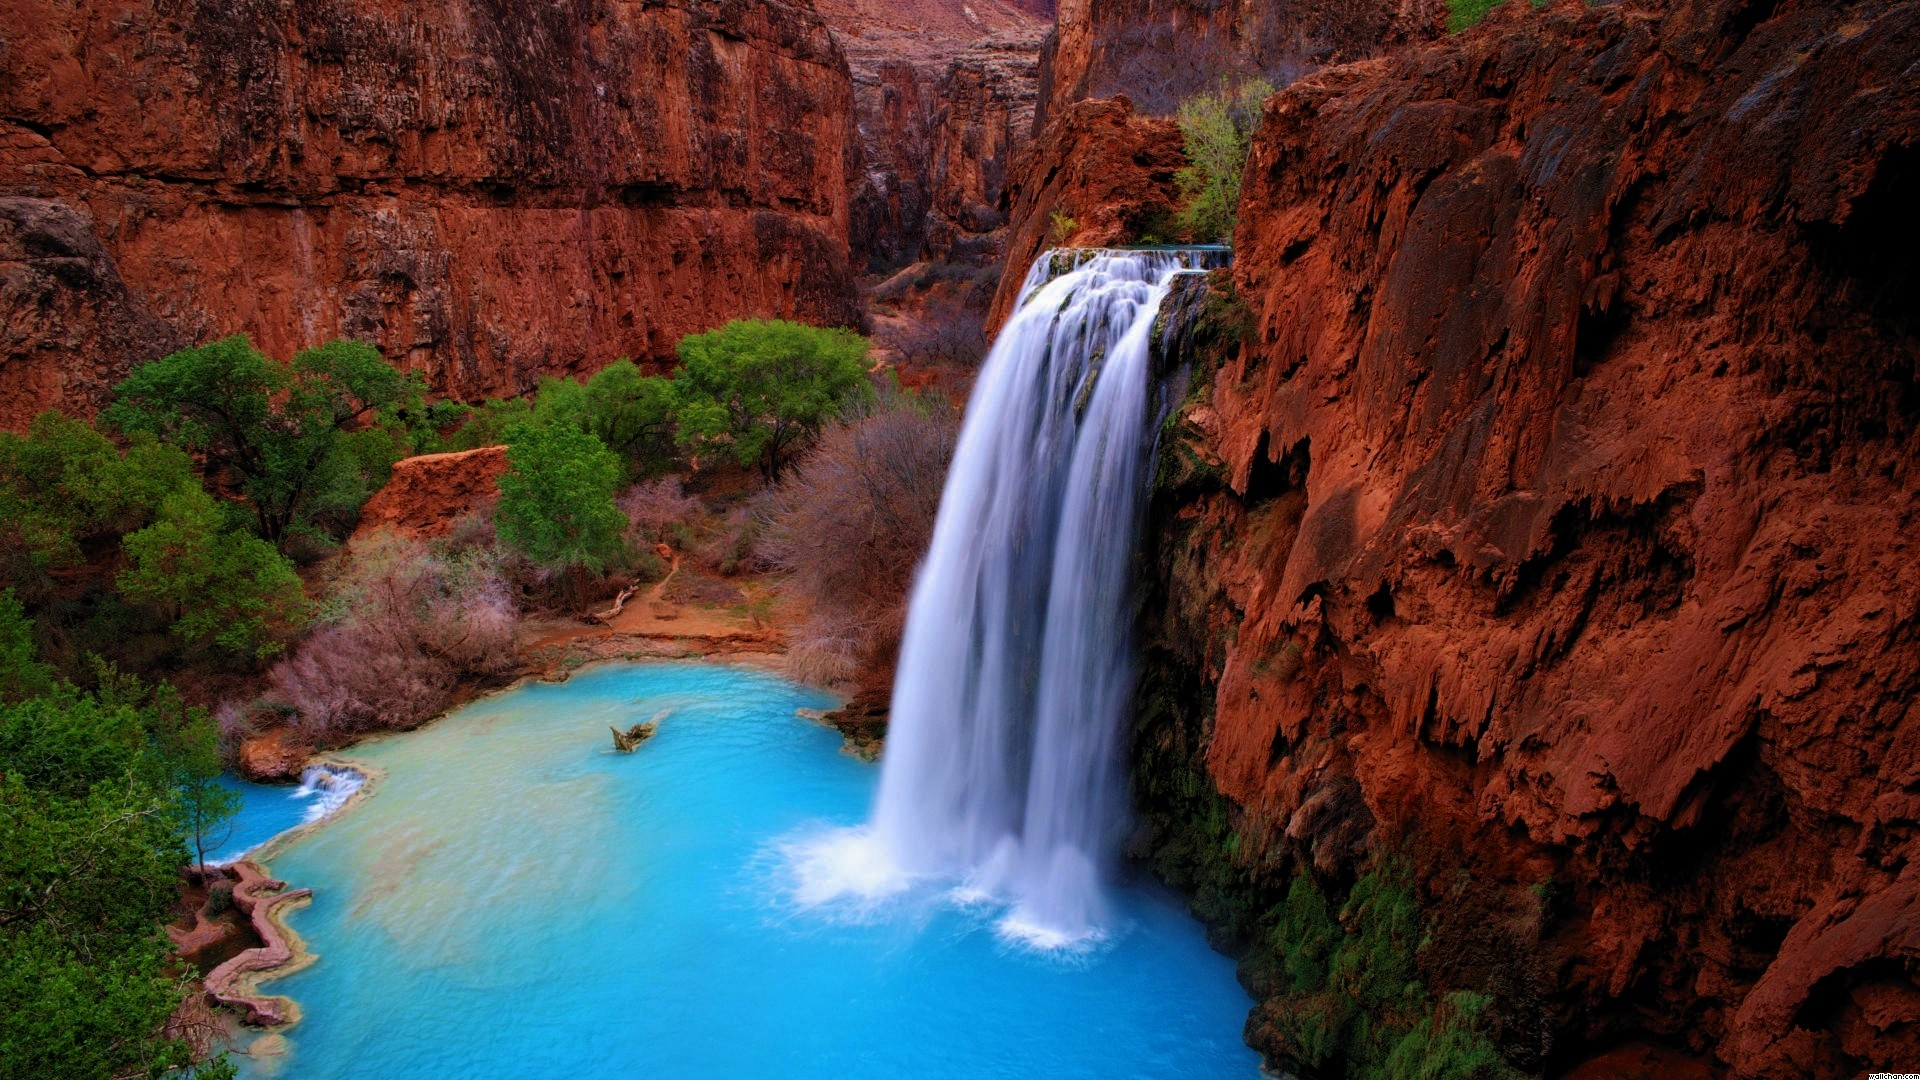 Waterfall in the canyon